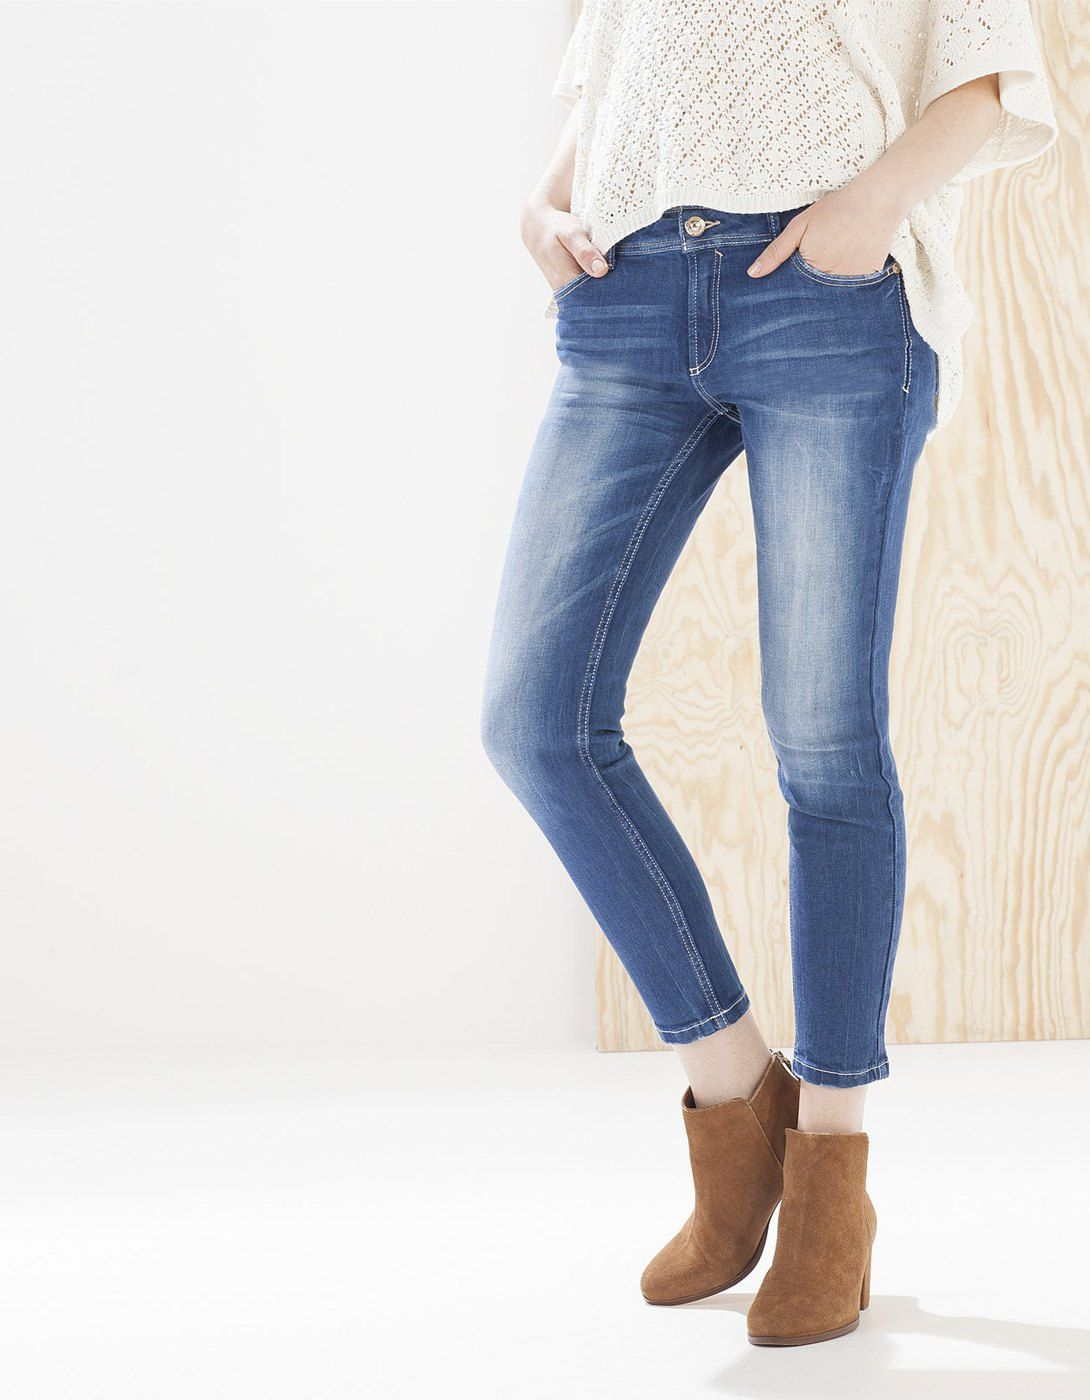 Amp Icirc Amp Curren Amp Icirc Amp Para Amp Icirc Amp Sup1 Amp Icirc Amp Frac12 Amp Iuml Amp 128 Amp Icirc Ankle Grazer Jeans Clothes Jeans Wear